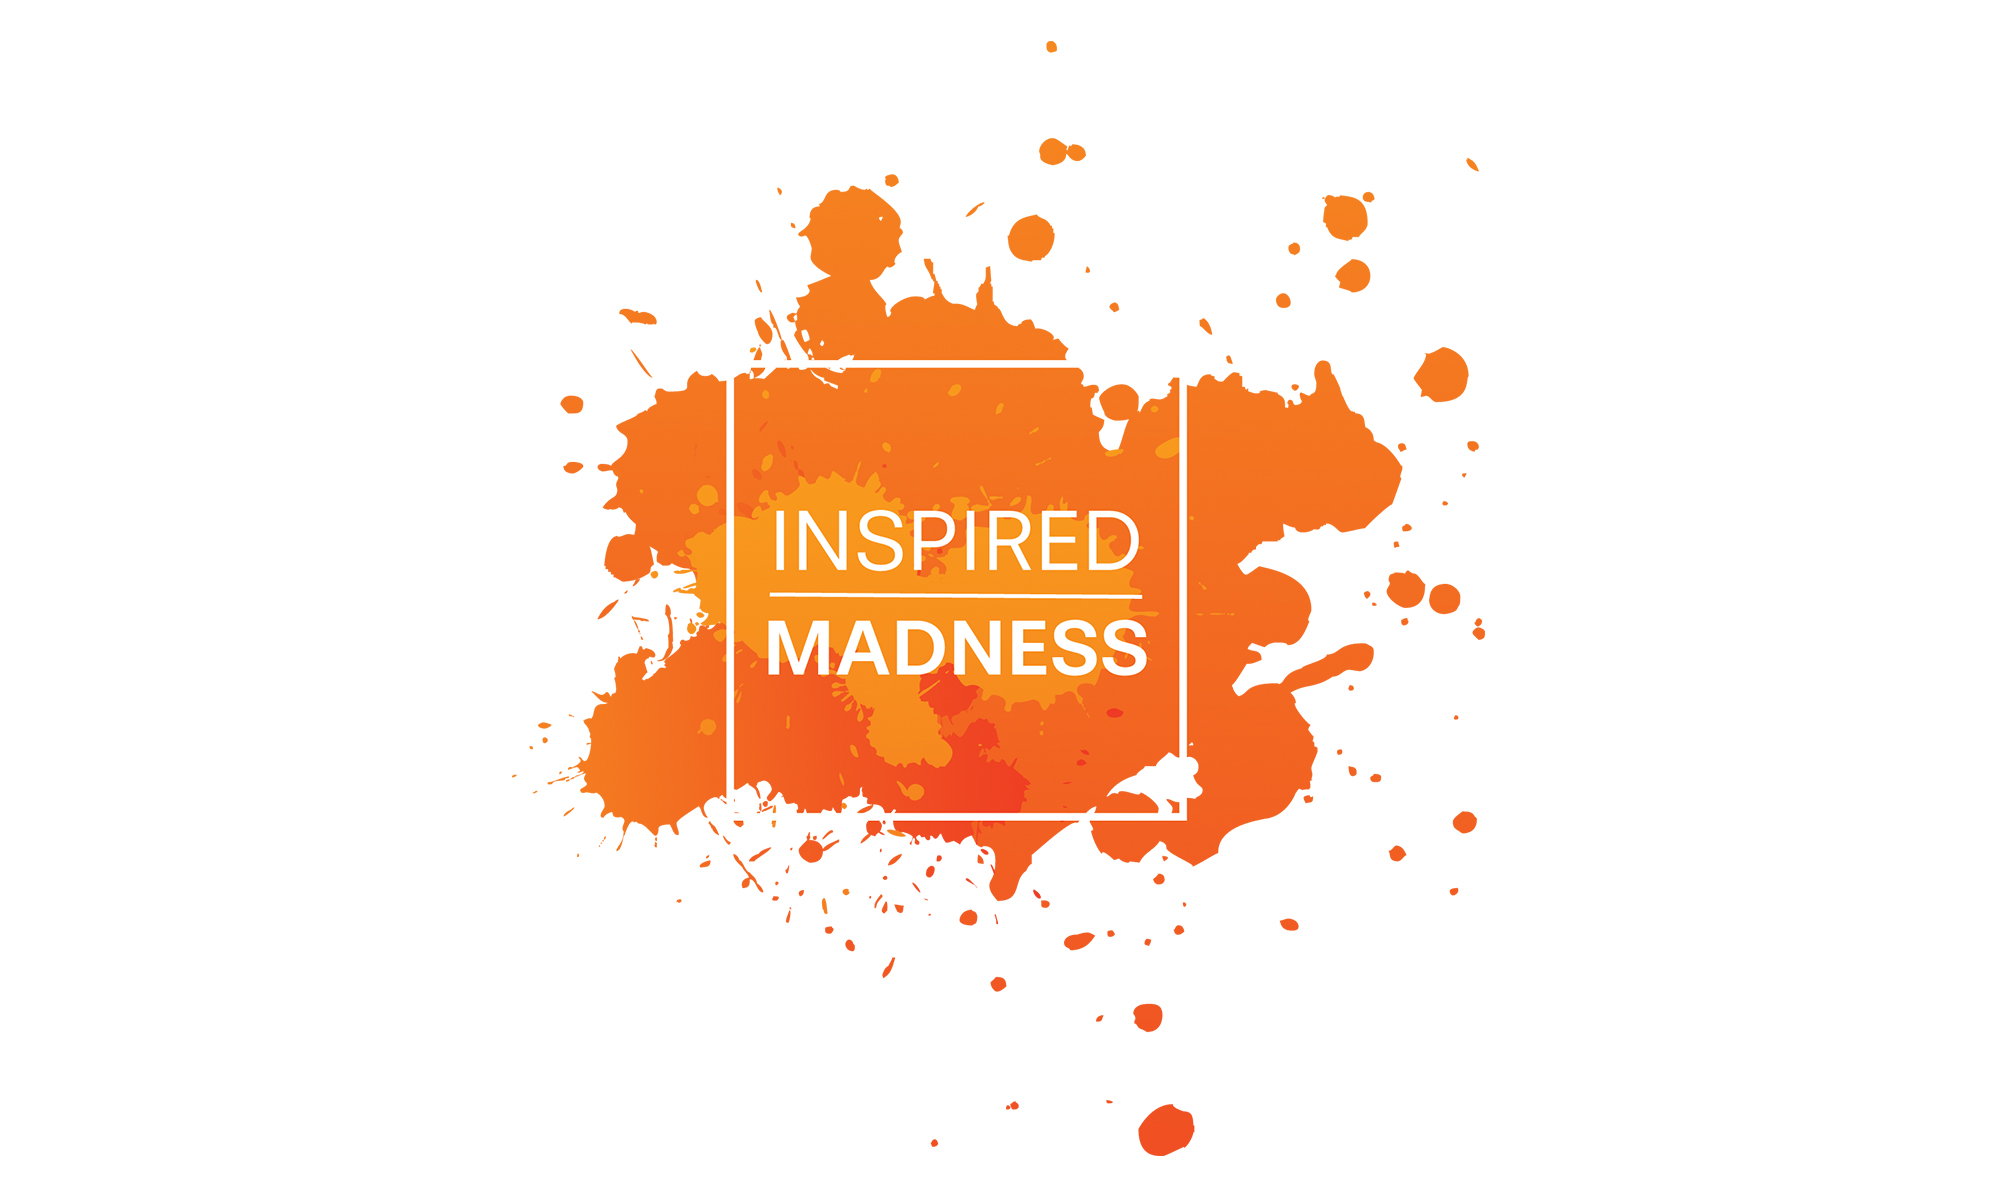 Inspired Madness